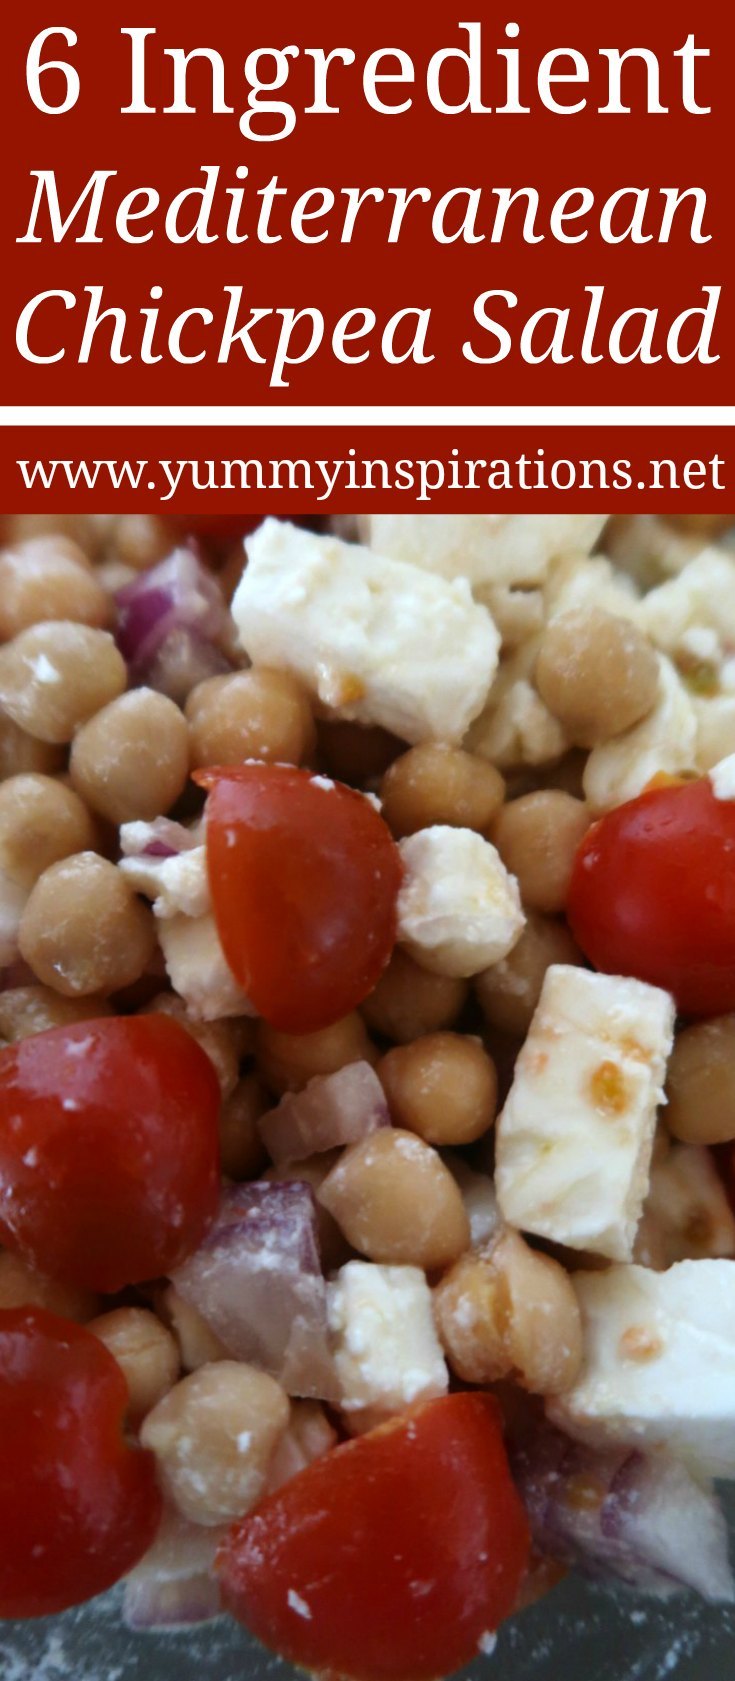 6 Ingredient Mediterranean Chickpea Salad Recipe - Easy Vegetarian Salad Recipes - Ideas for lunch or a light dinner.